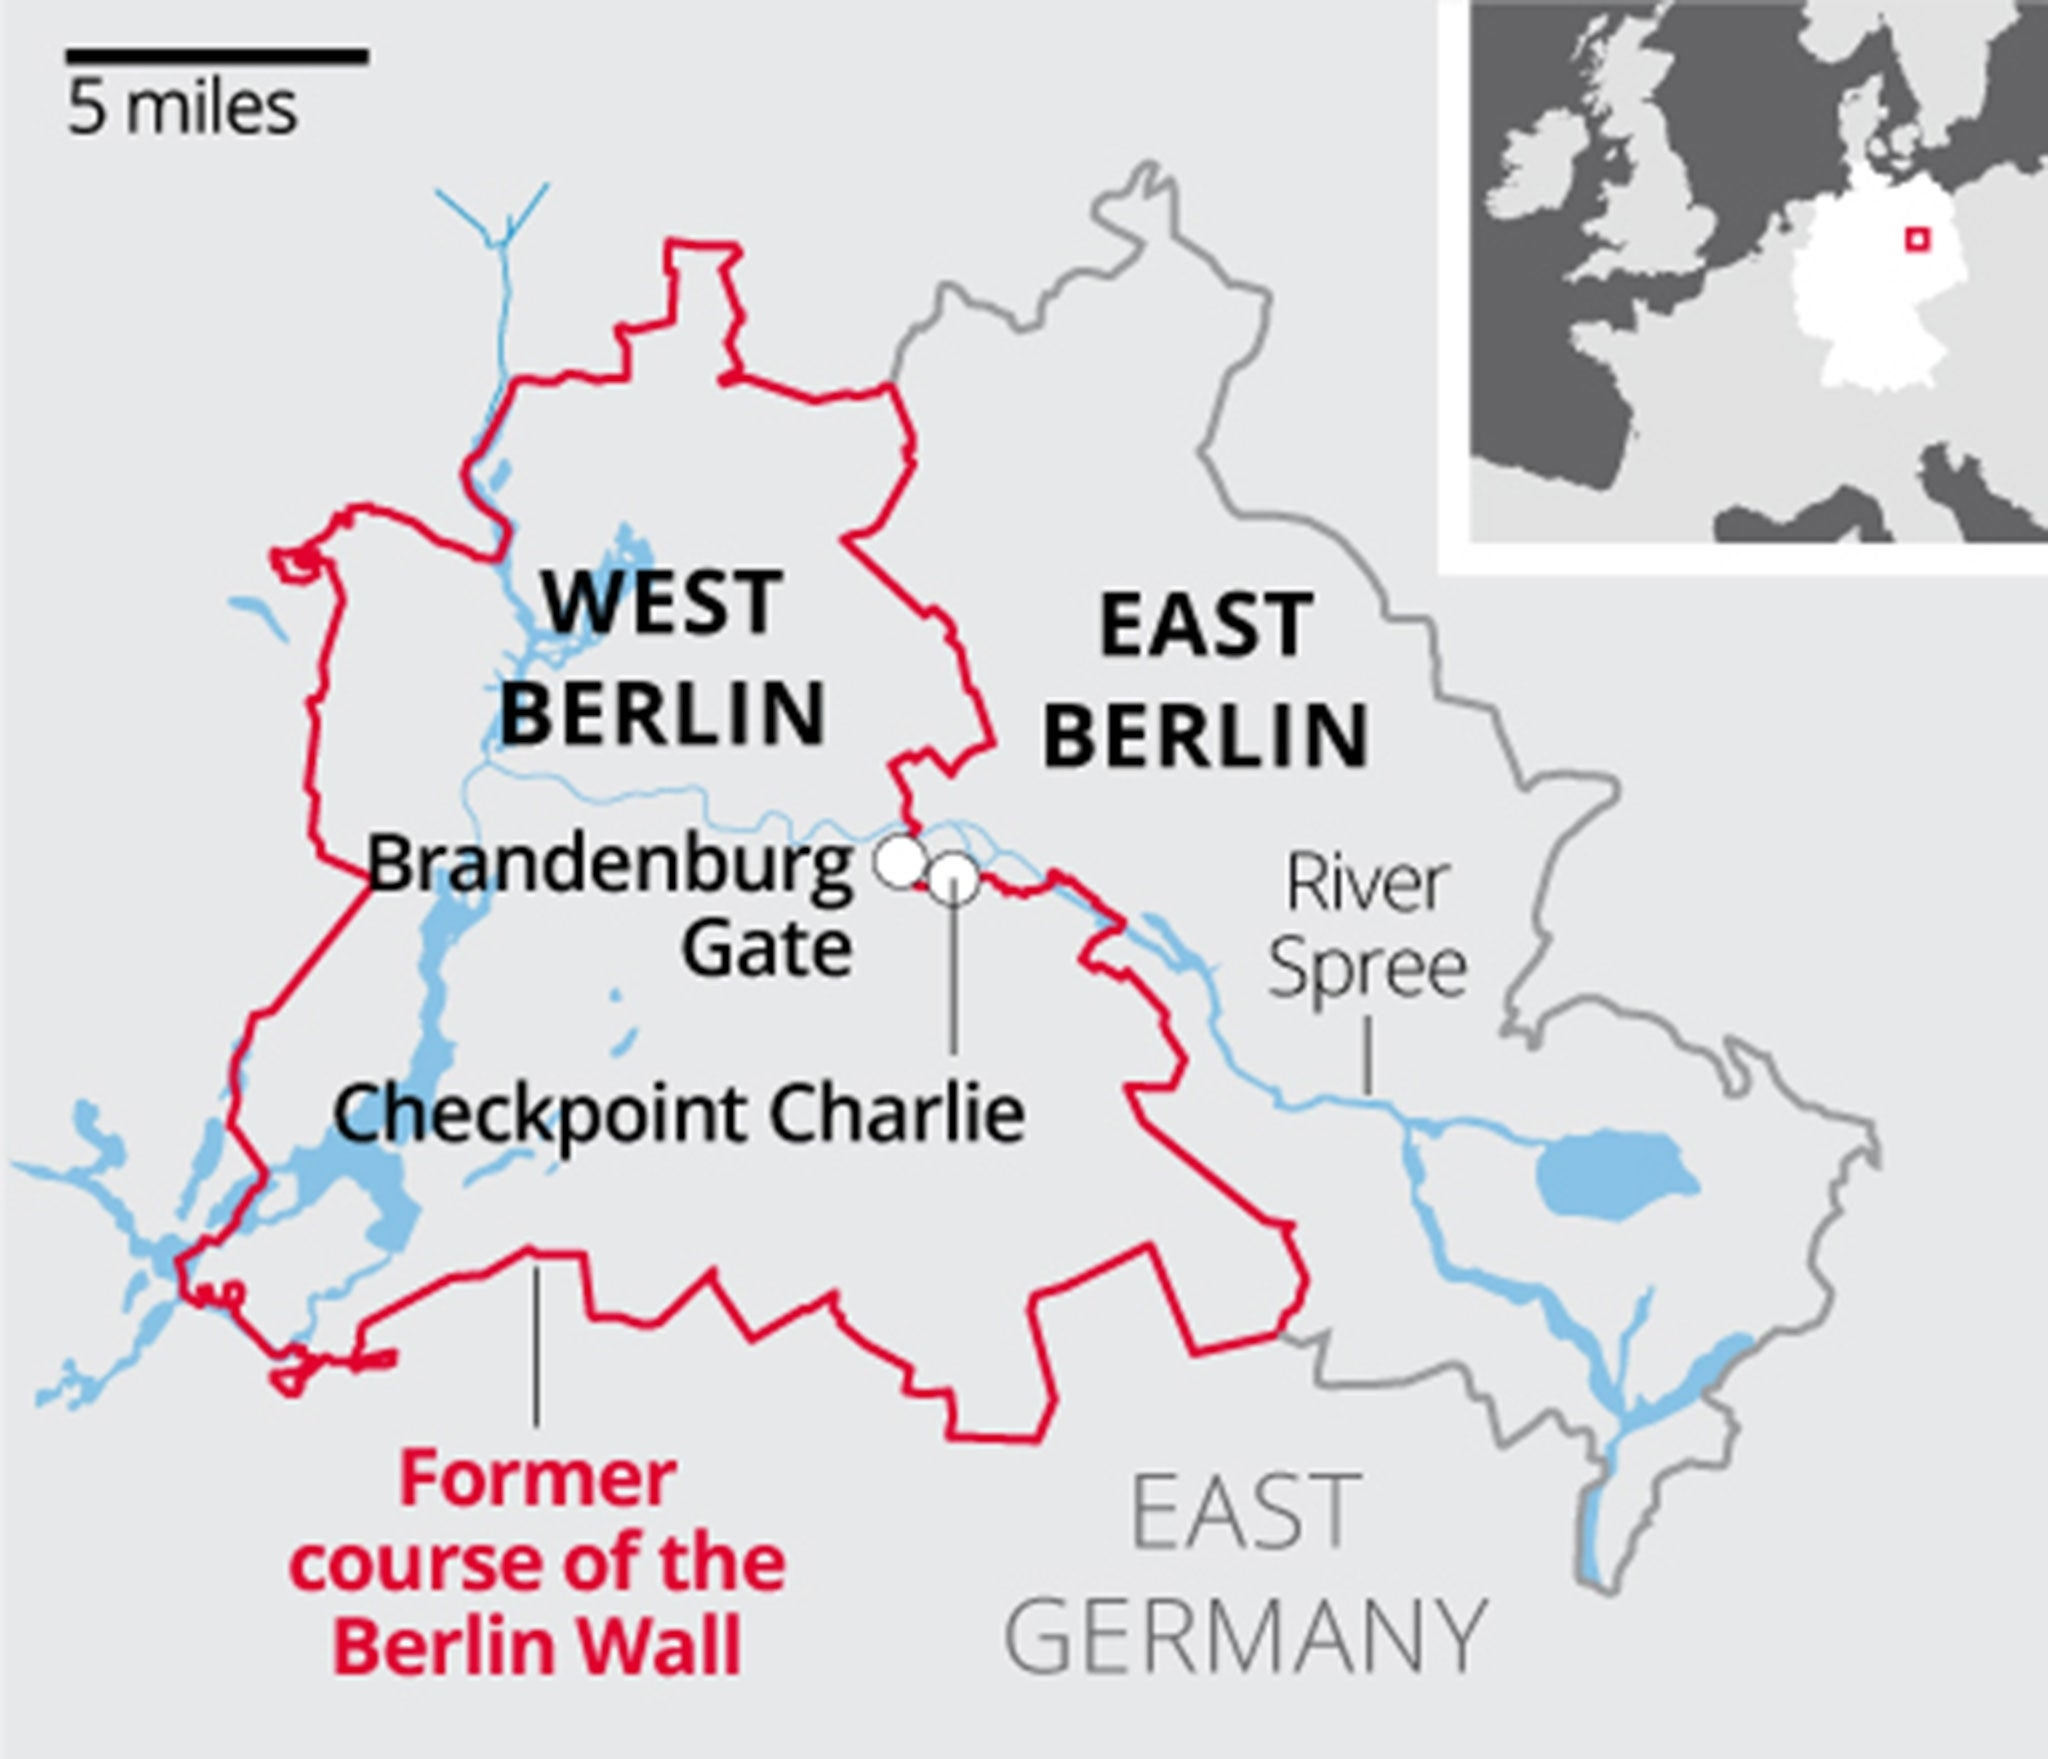 Berlin Wall: What You Need To Know About The Barrier That Divided regarding Germany Map Before 1989